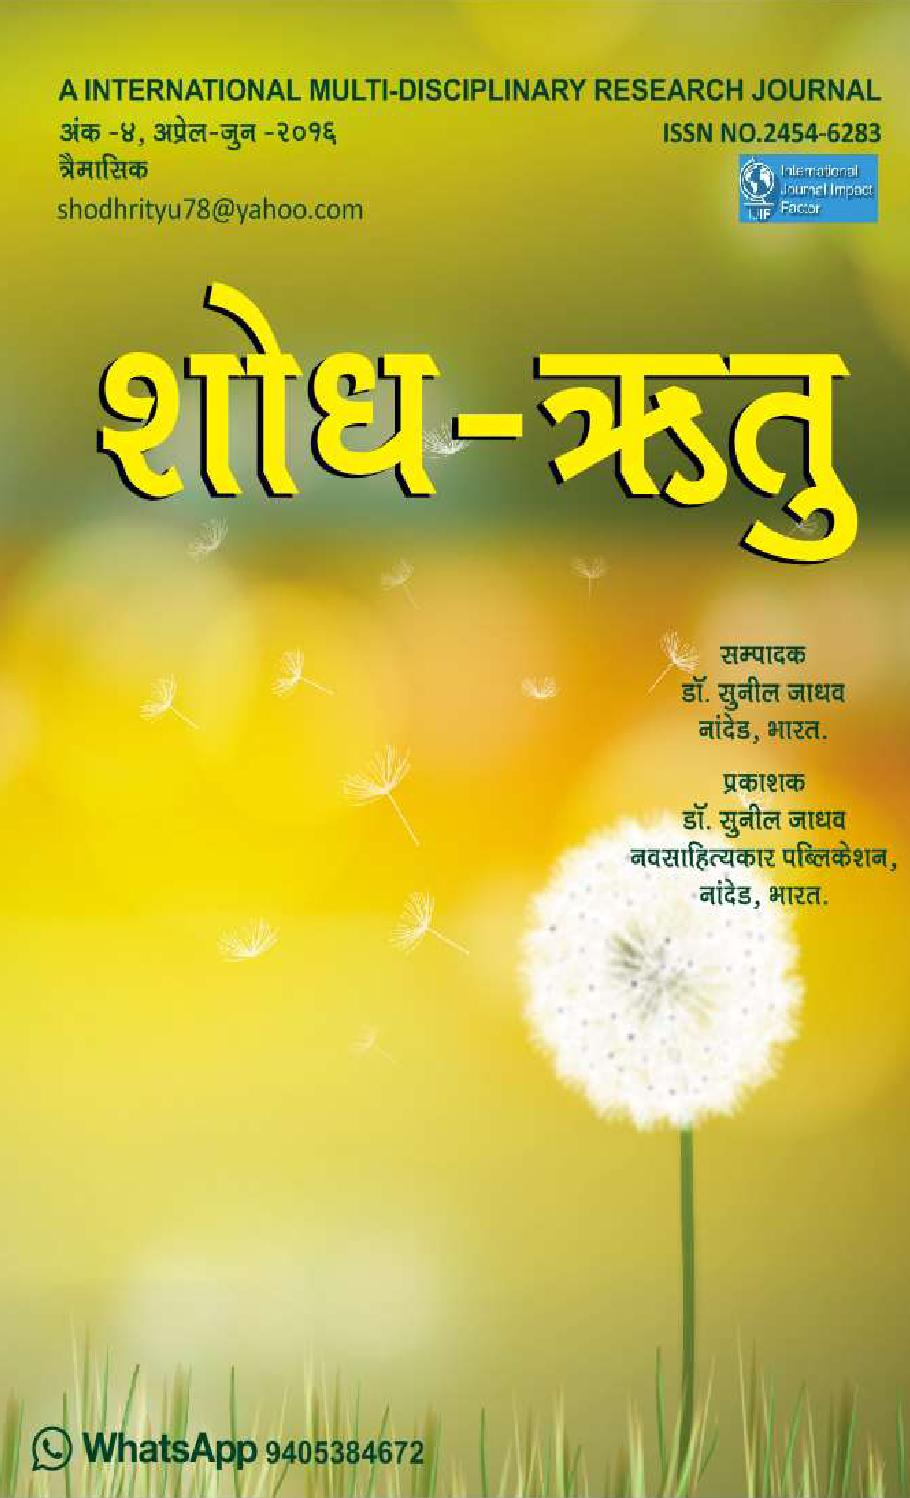 Shodh ritu ank 4 2016 e journal by Sunil Jadhav - issuu